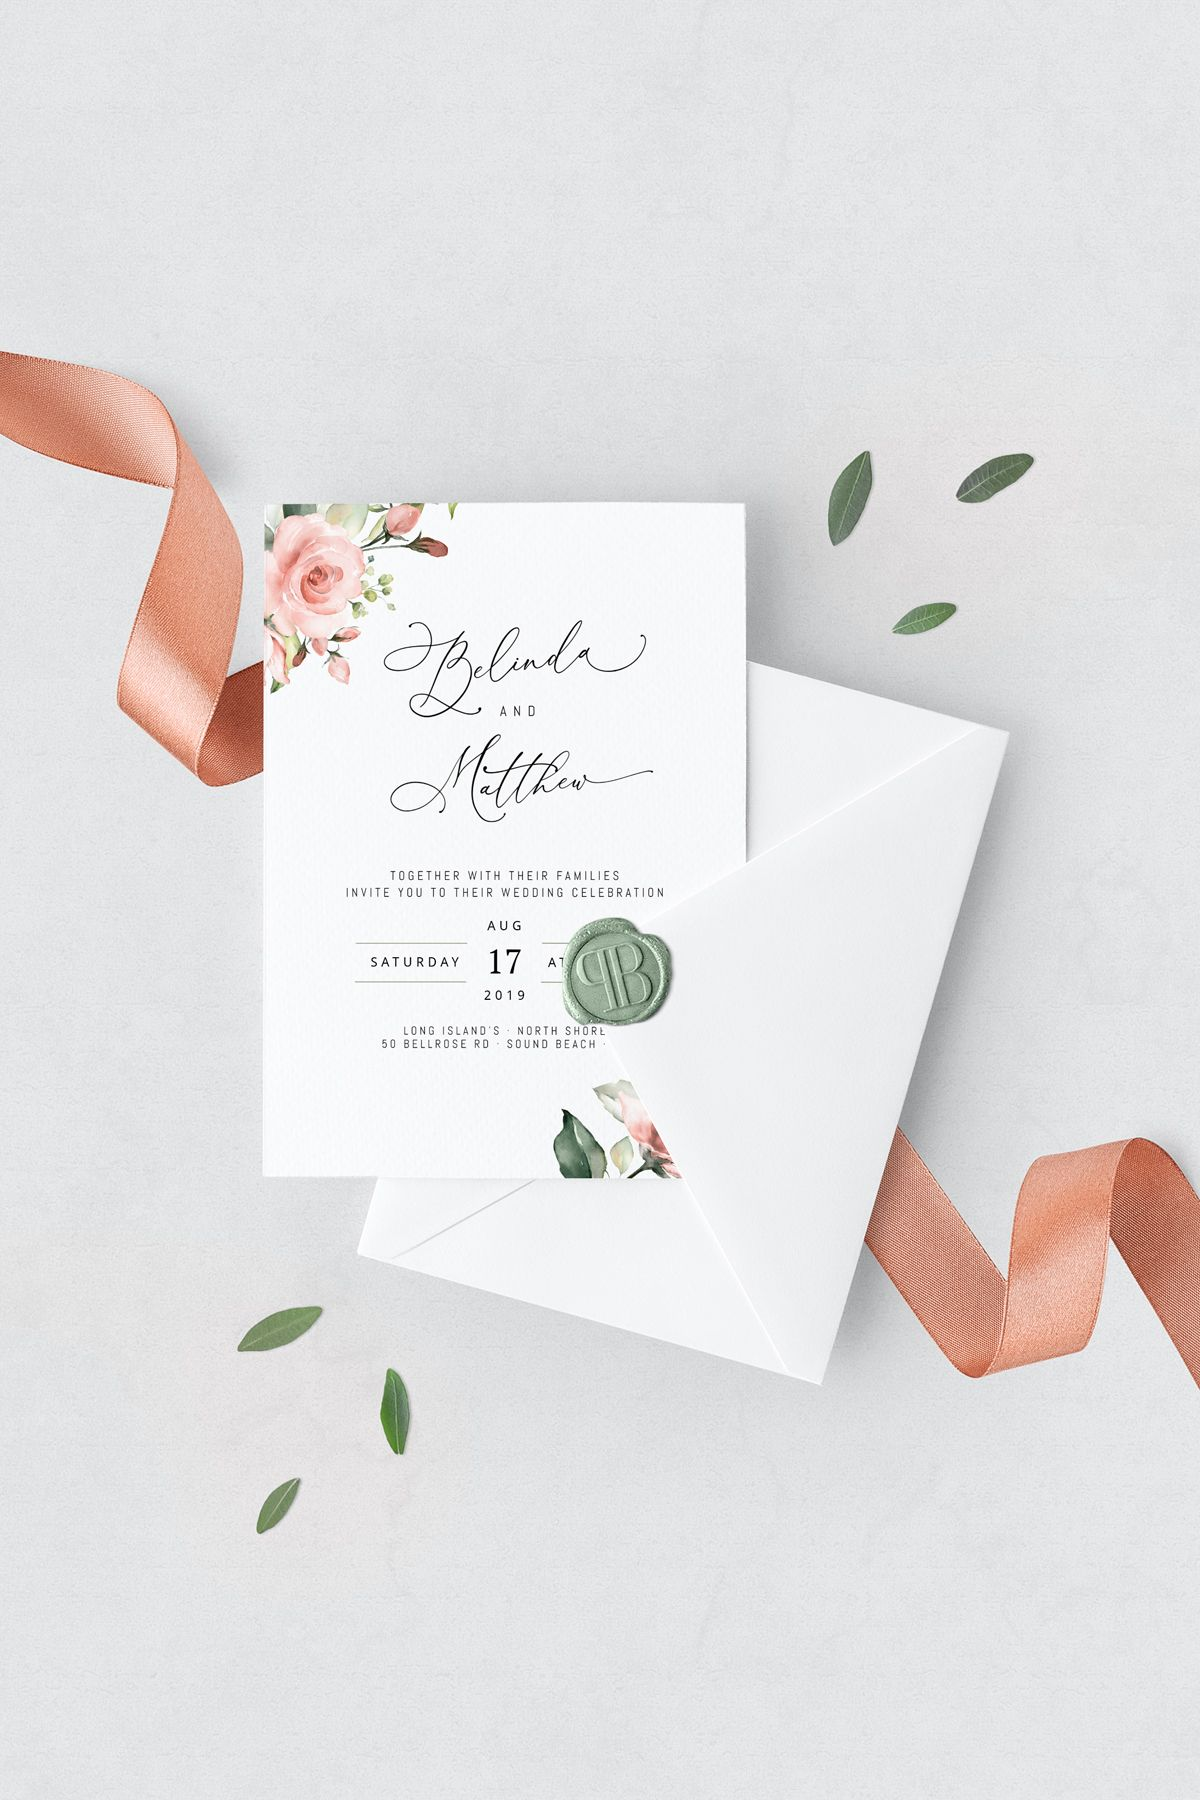 Wedding Invitation Template Kit With Roses And Greenery INSTANT